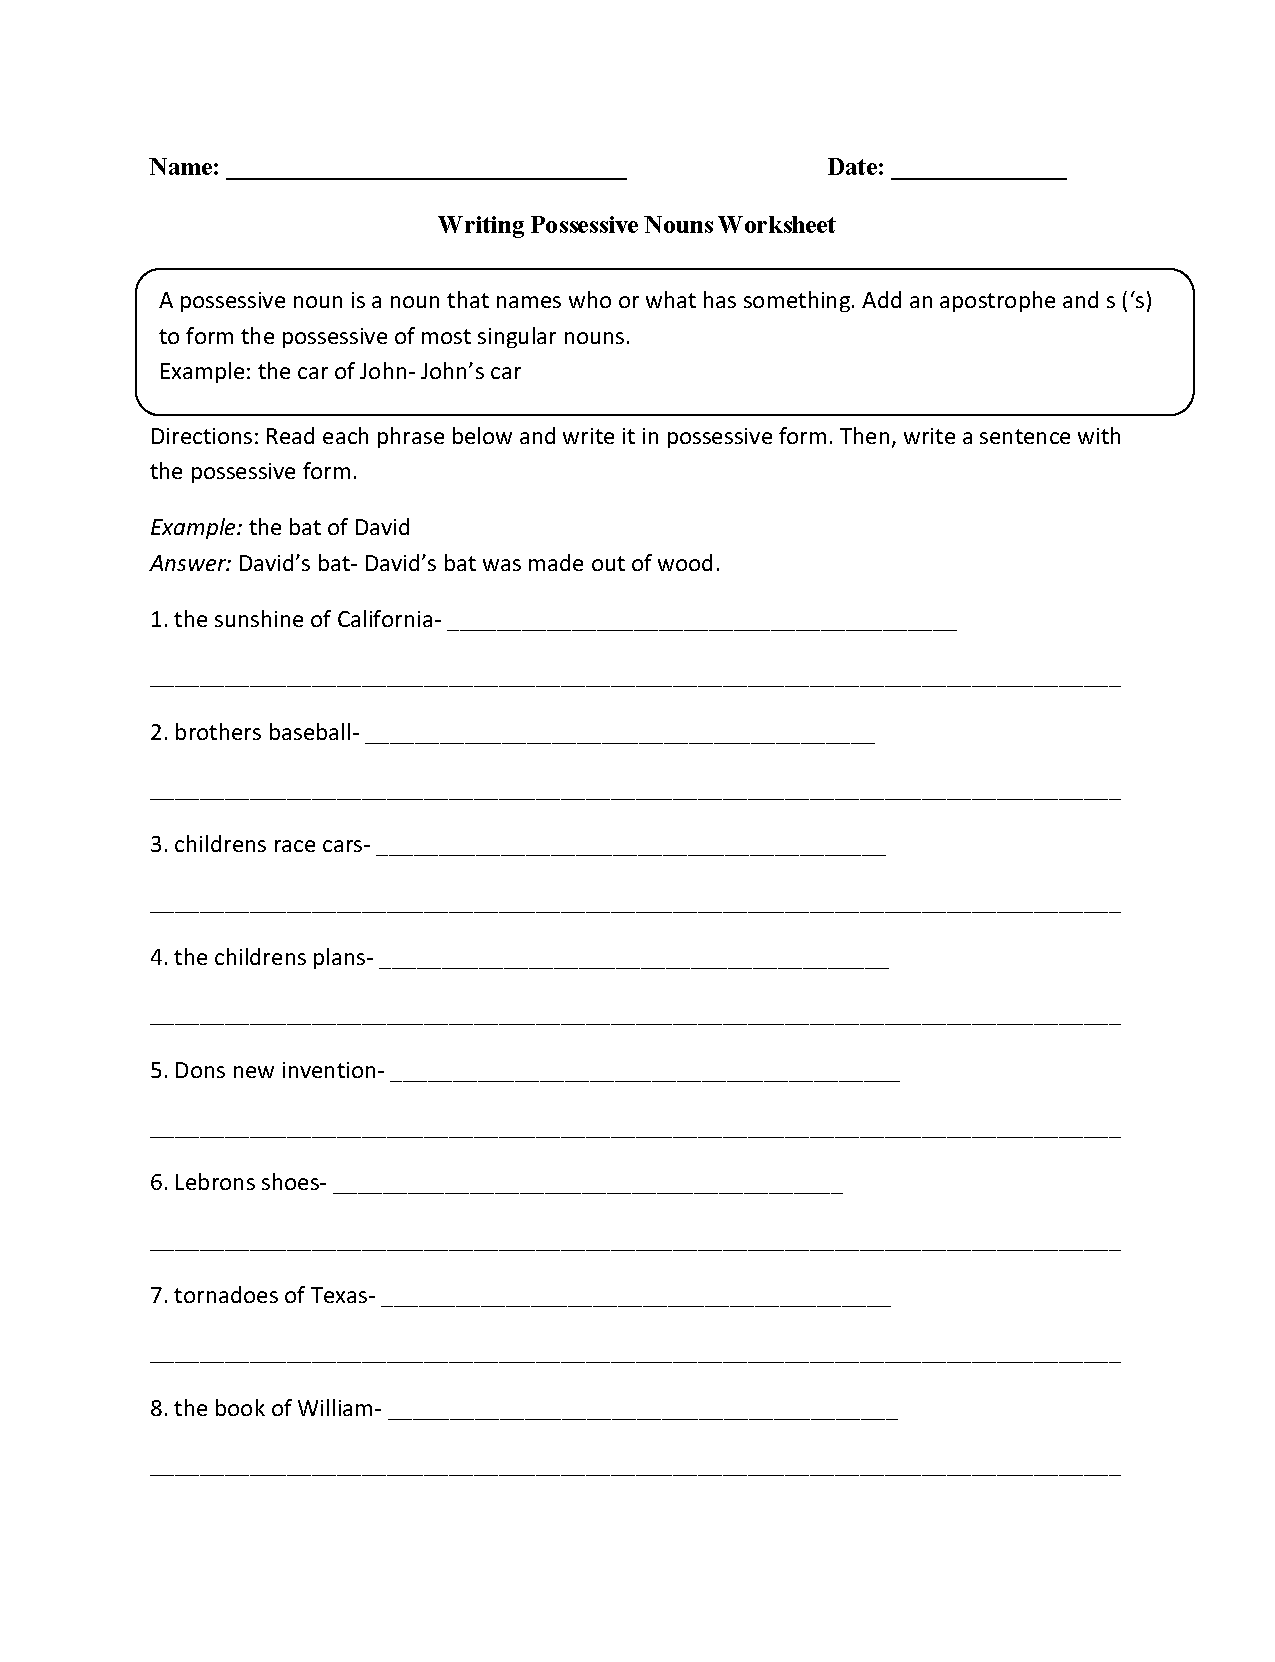 Singular And Possessive Nouns Worksheet